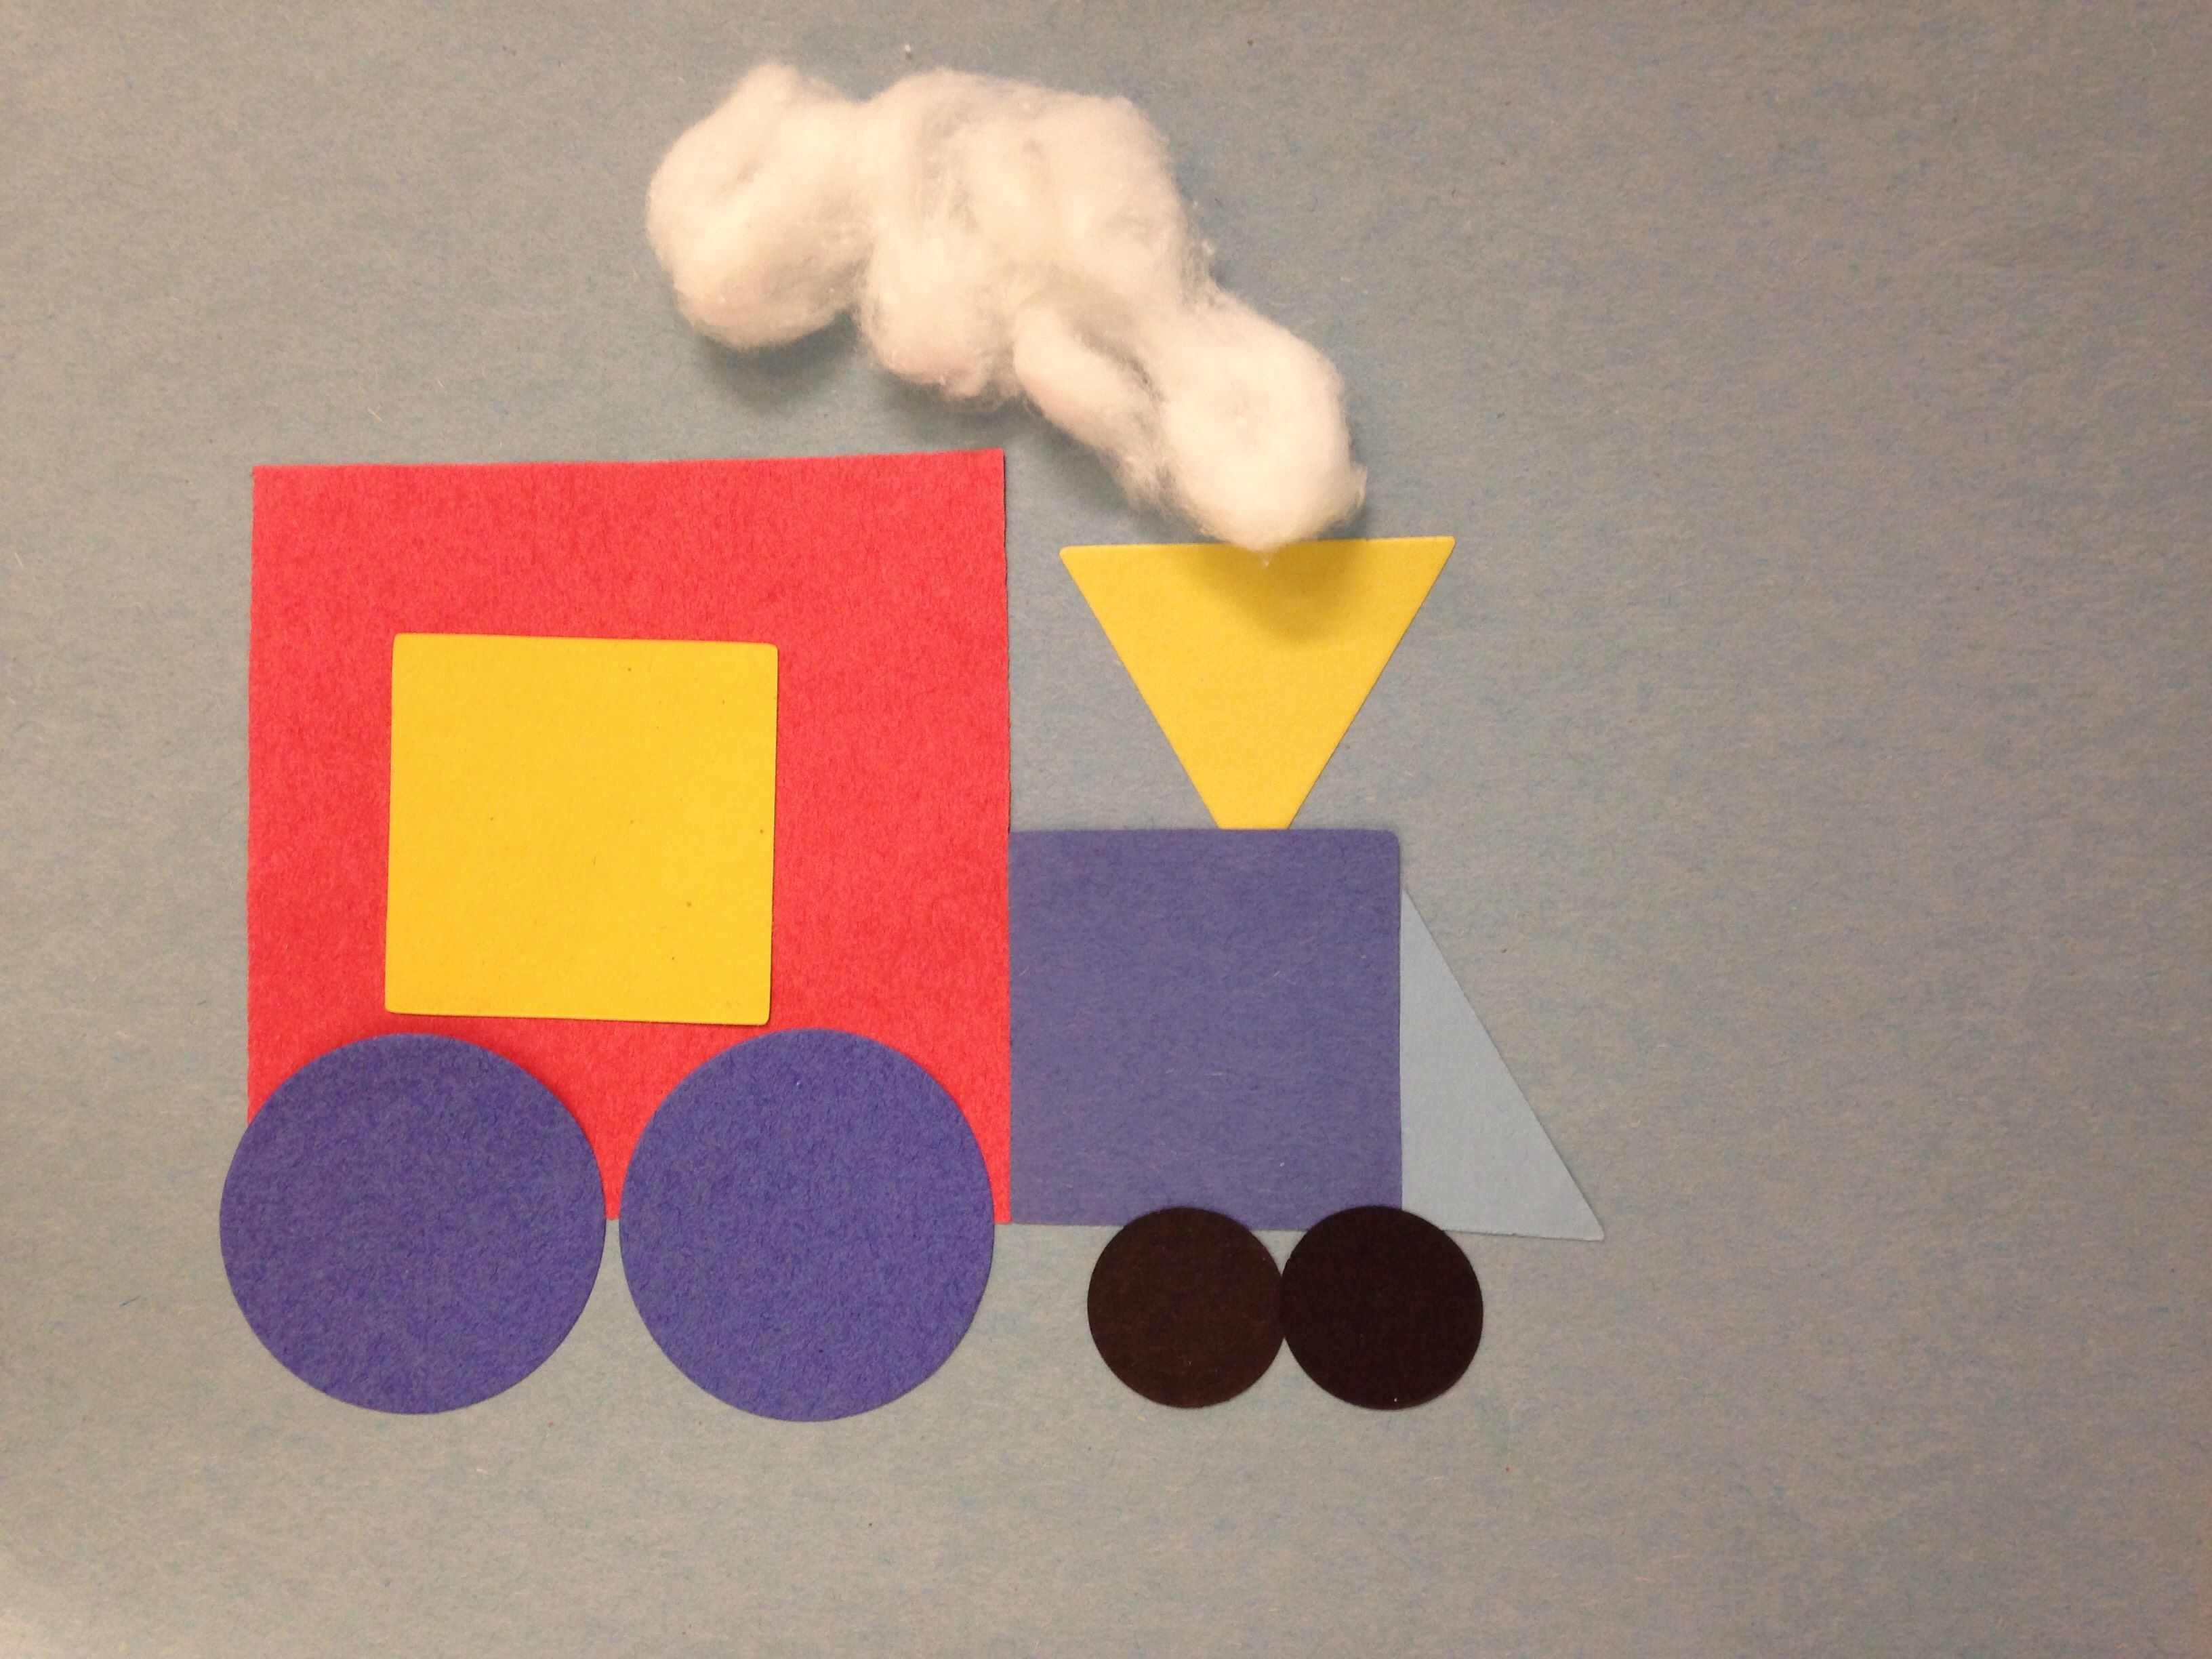 Train Storytime craft | Storytime crafts, Train crafts, Train ...